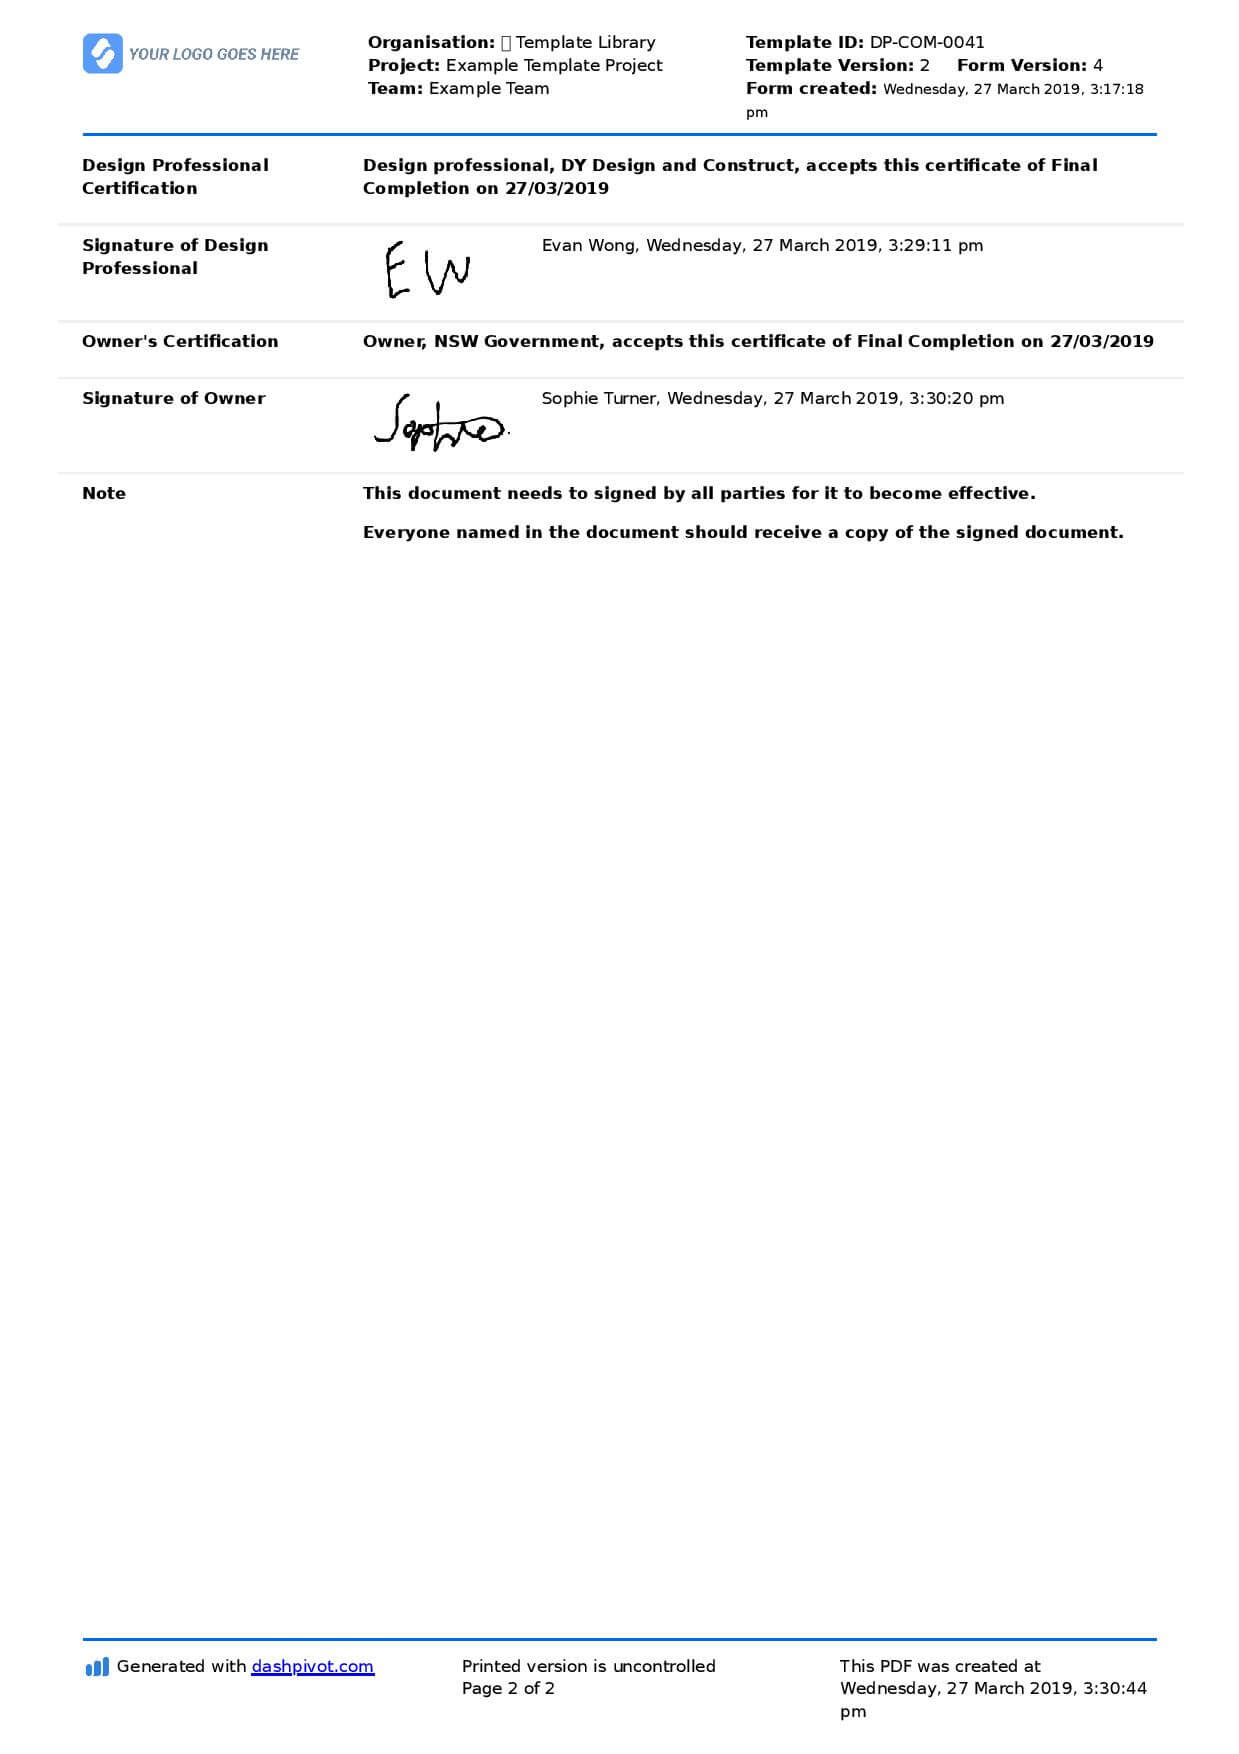 Letter Of Completion Of Work Sample (Use Or Copy For Yourself) Inside Jct Practical Completion Certificate Template